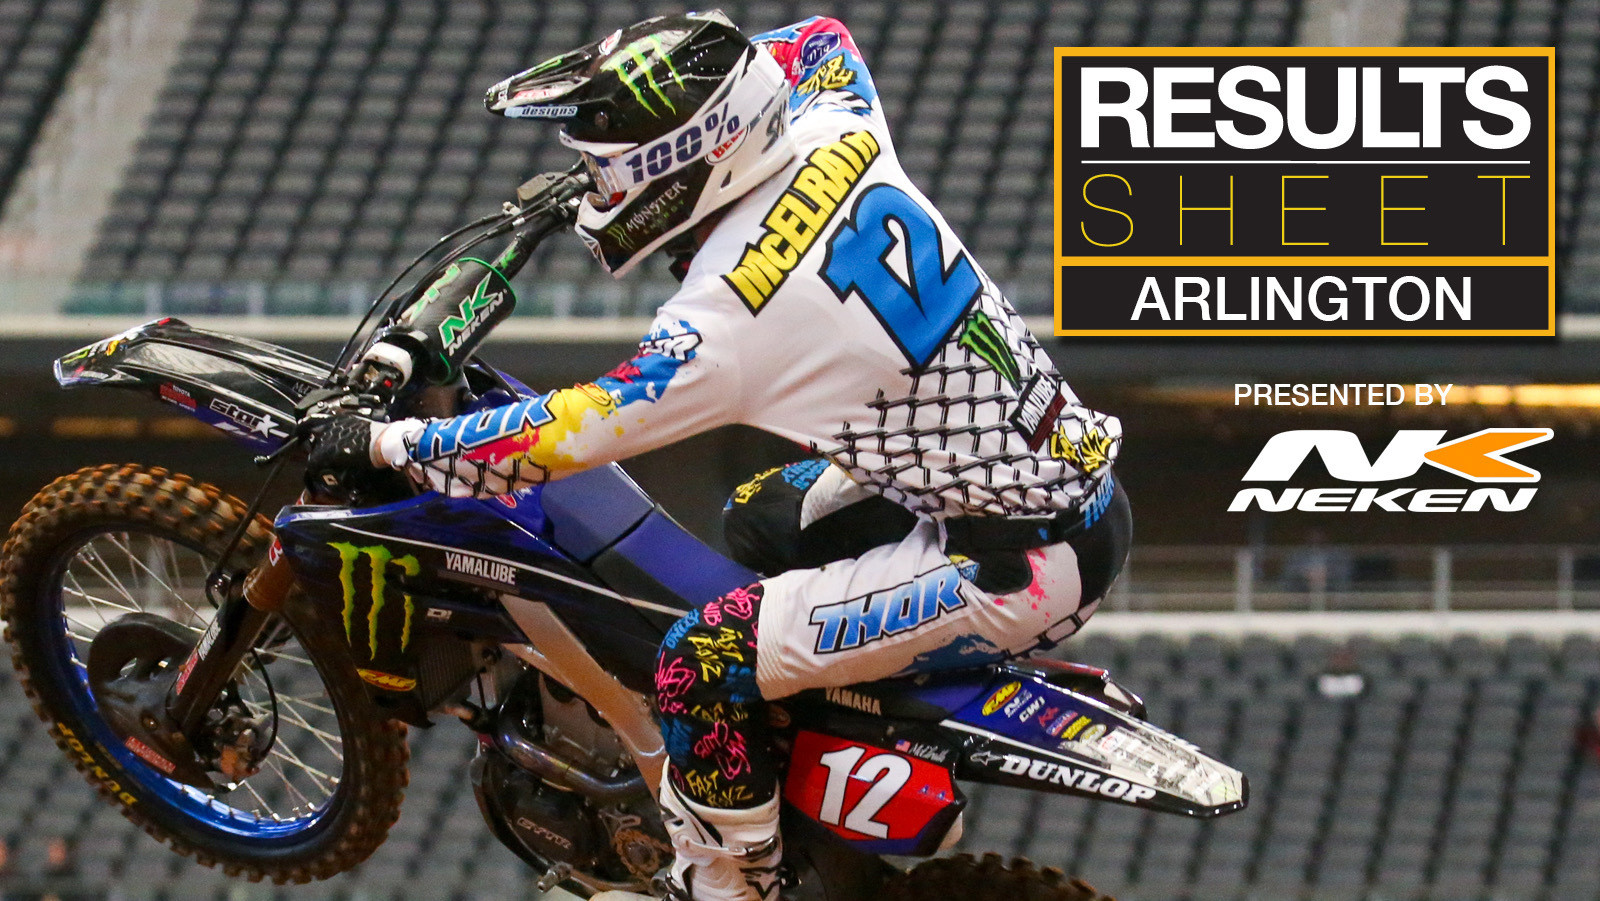 Results Sheet: 2020 Arlington Supercross